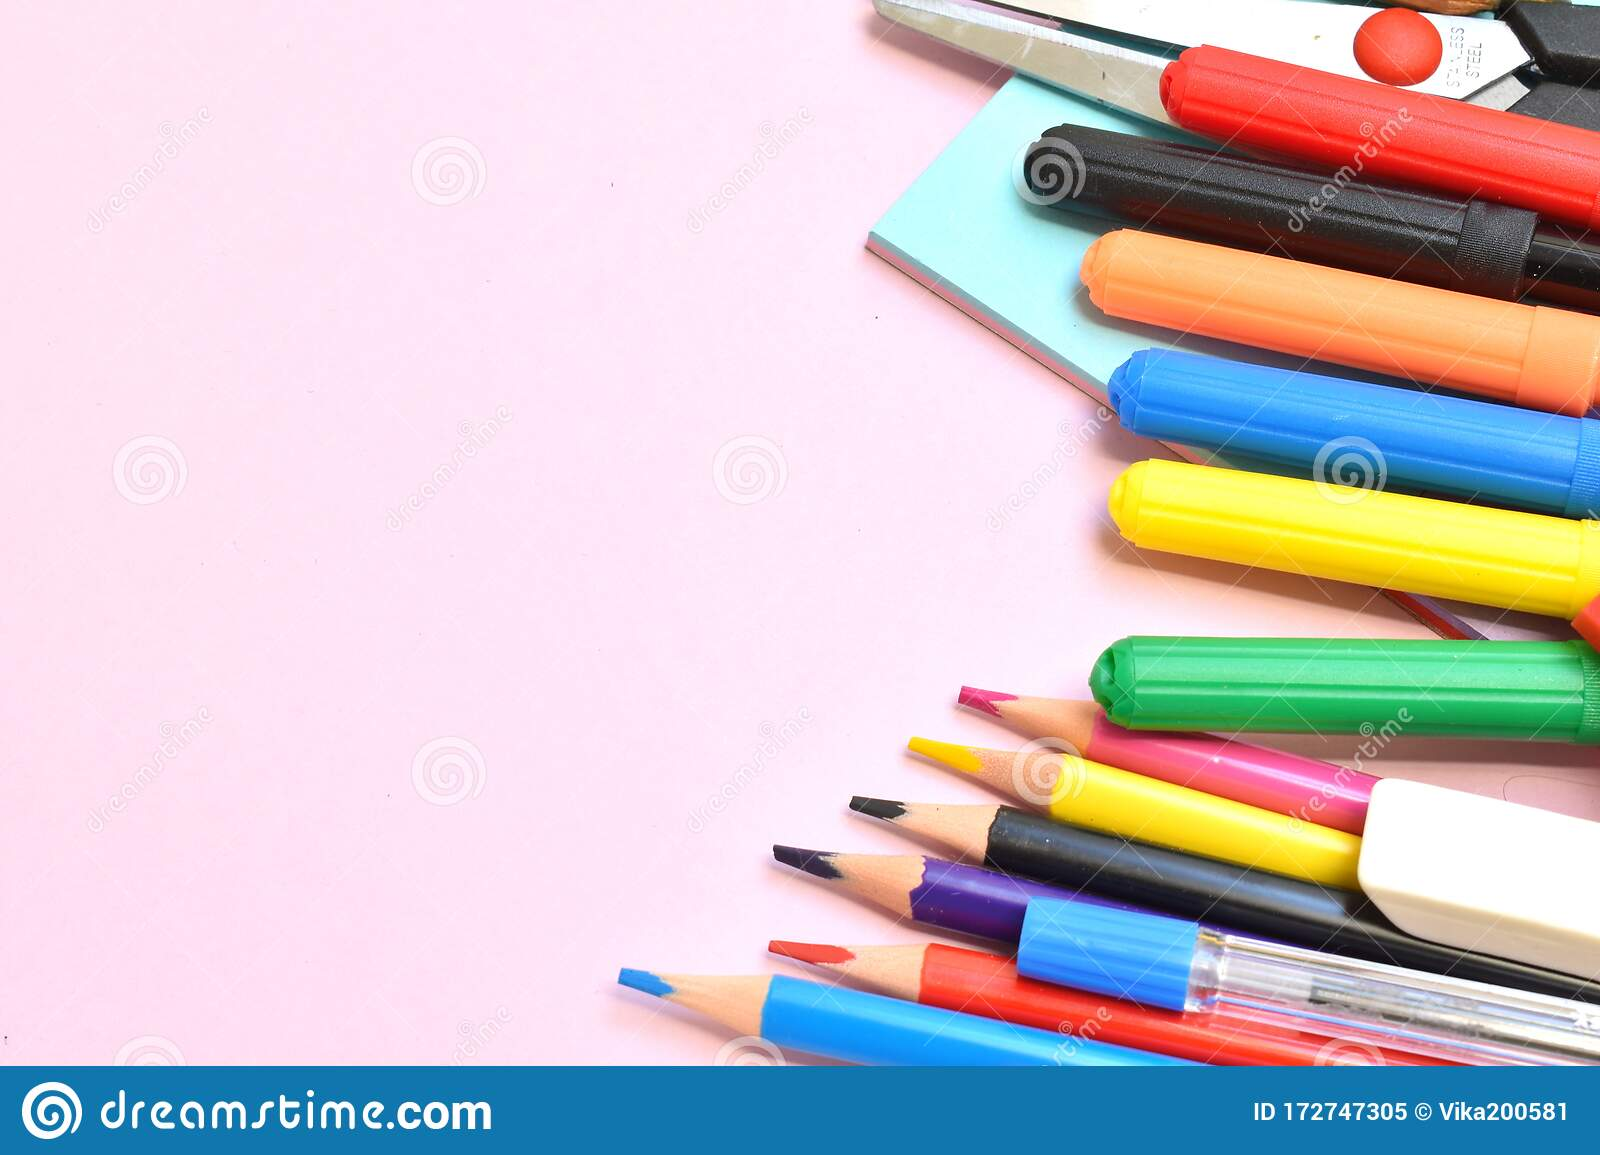 Education Background Stationery Training Time School Knowledge Stock Image Image Of Learning Notebook 172747305